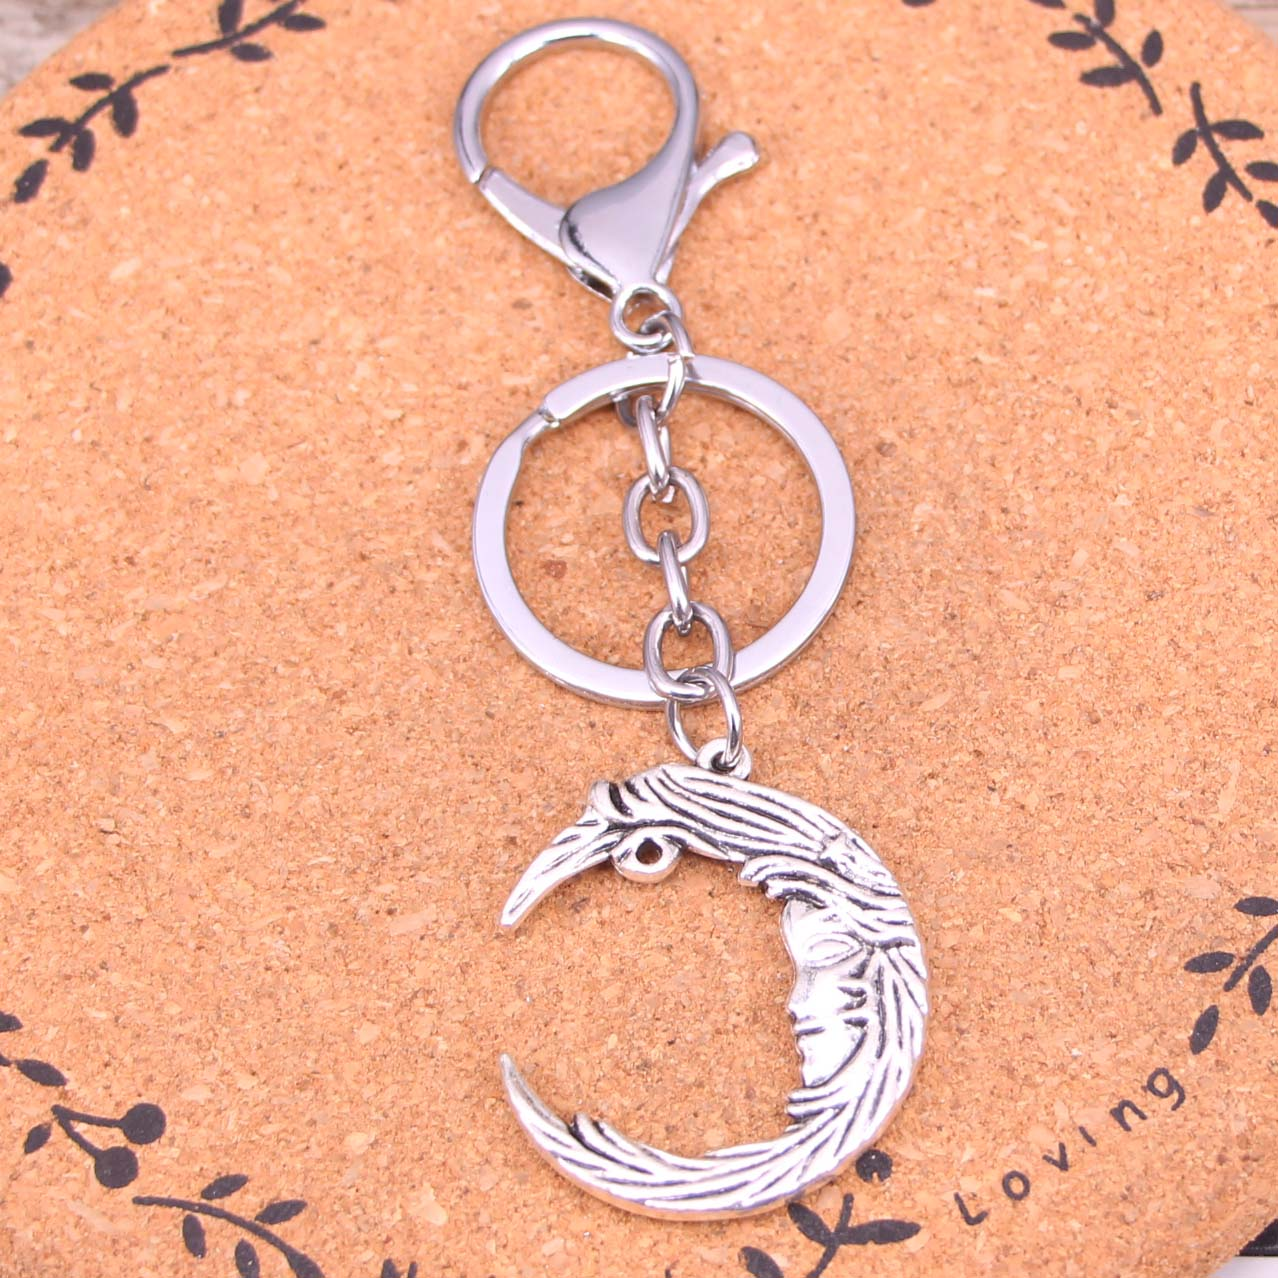 New Fashion Silver Color Alloy Metal Pendant man in the moon face Key Chain Key Ring Gift For Car Keychain Accessory